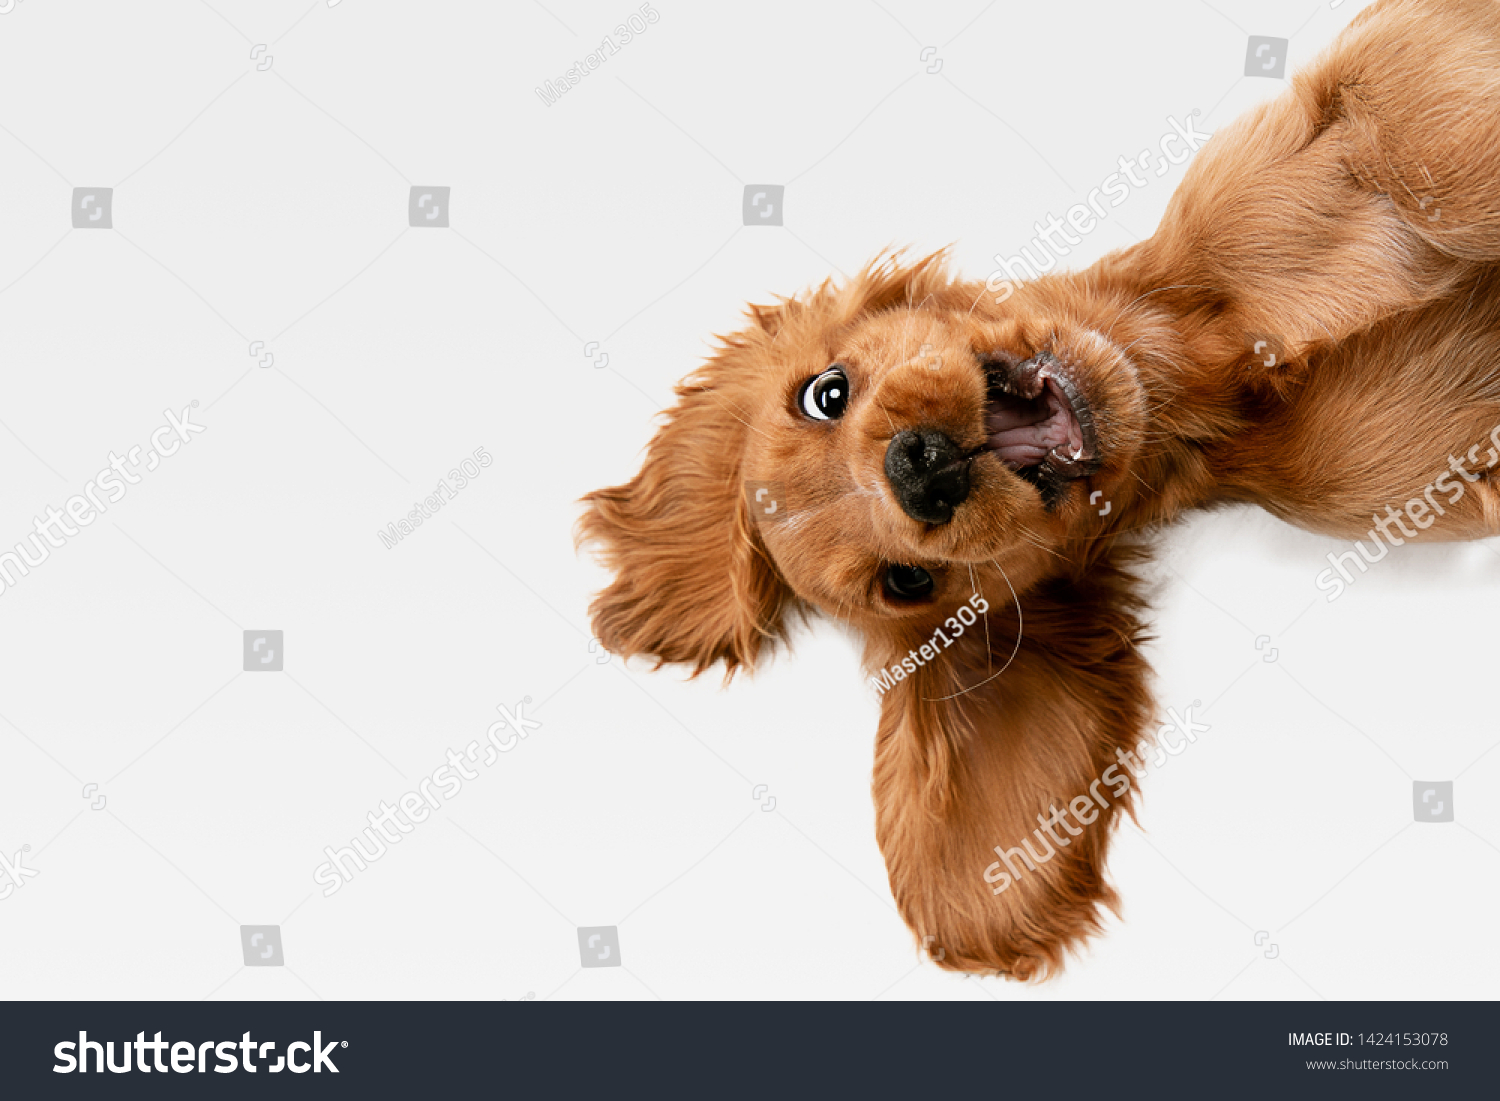 Pure youth crazy. English cocker spaniel young dog is posing. Cute playful white-braun doggy or pet is playing and looking happy isolated on white background. Concept of motion, action, movement. #1424153078